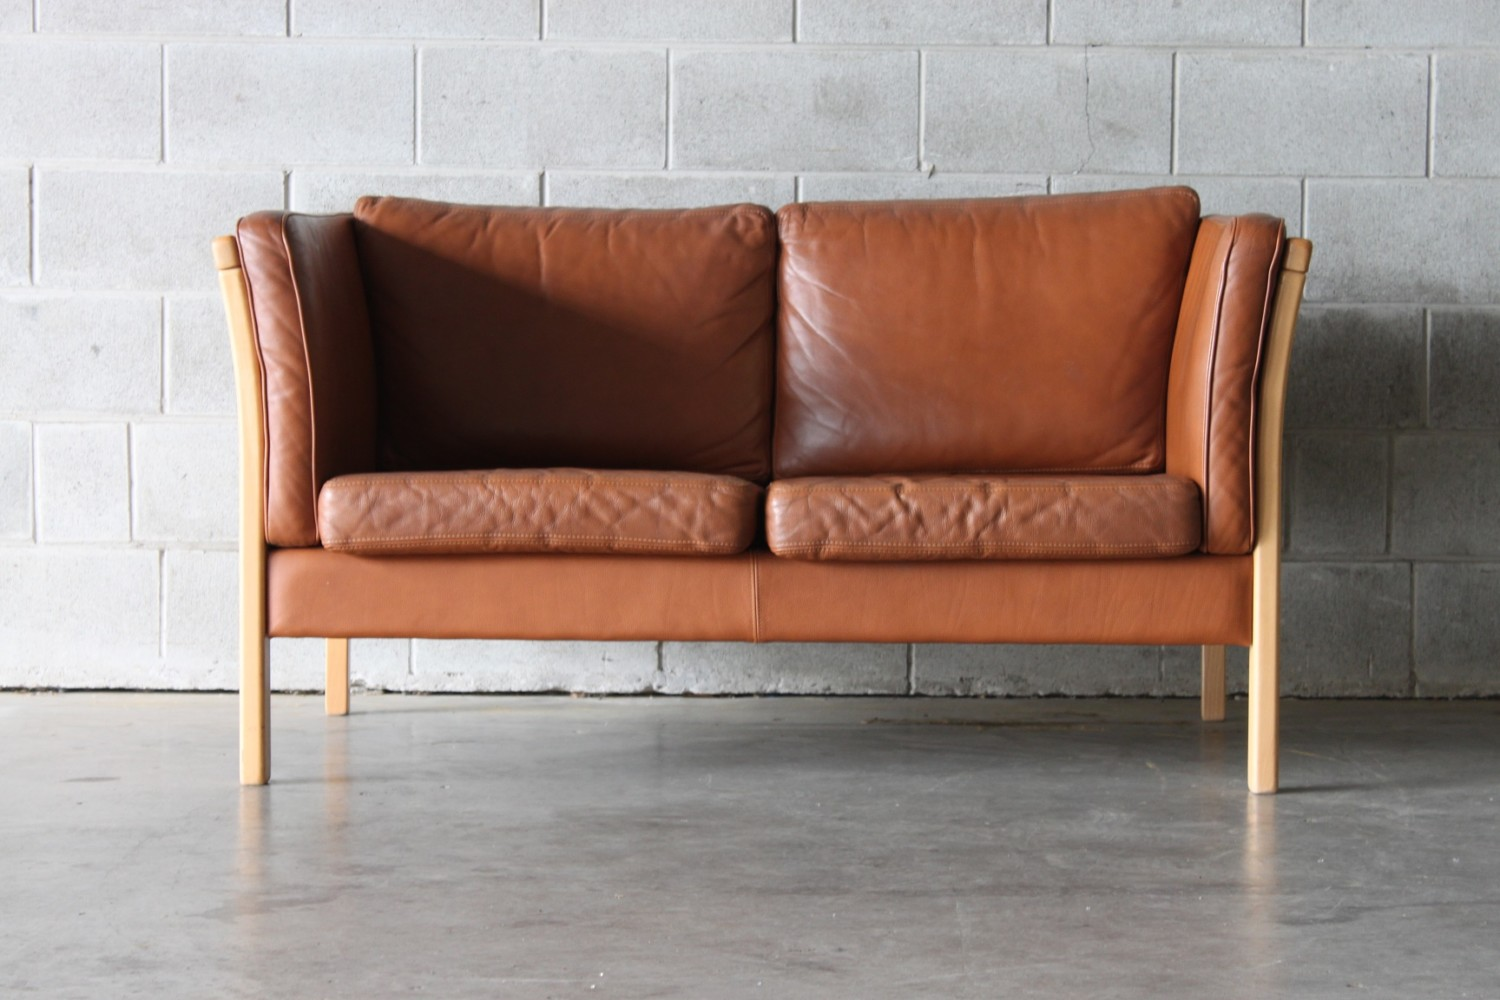 Leather Sofa Wellington Nz Tan Leather 2 Seater Sofa The Vintage Shop